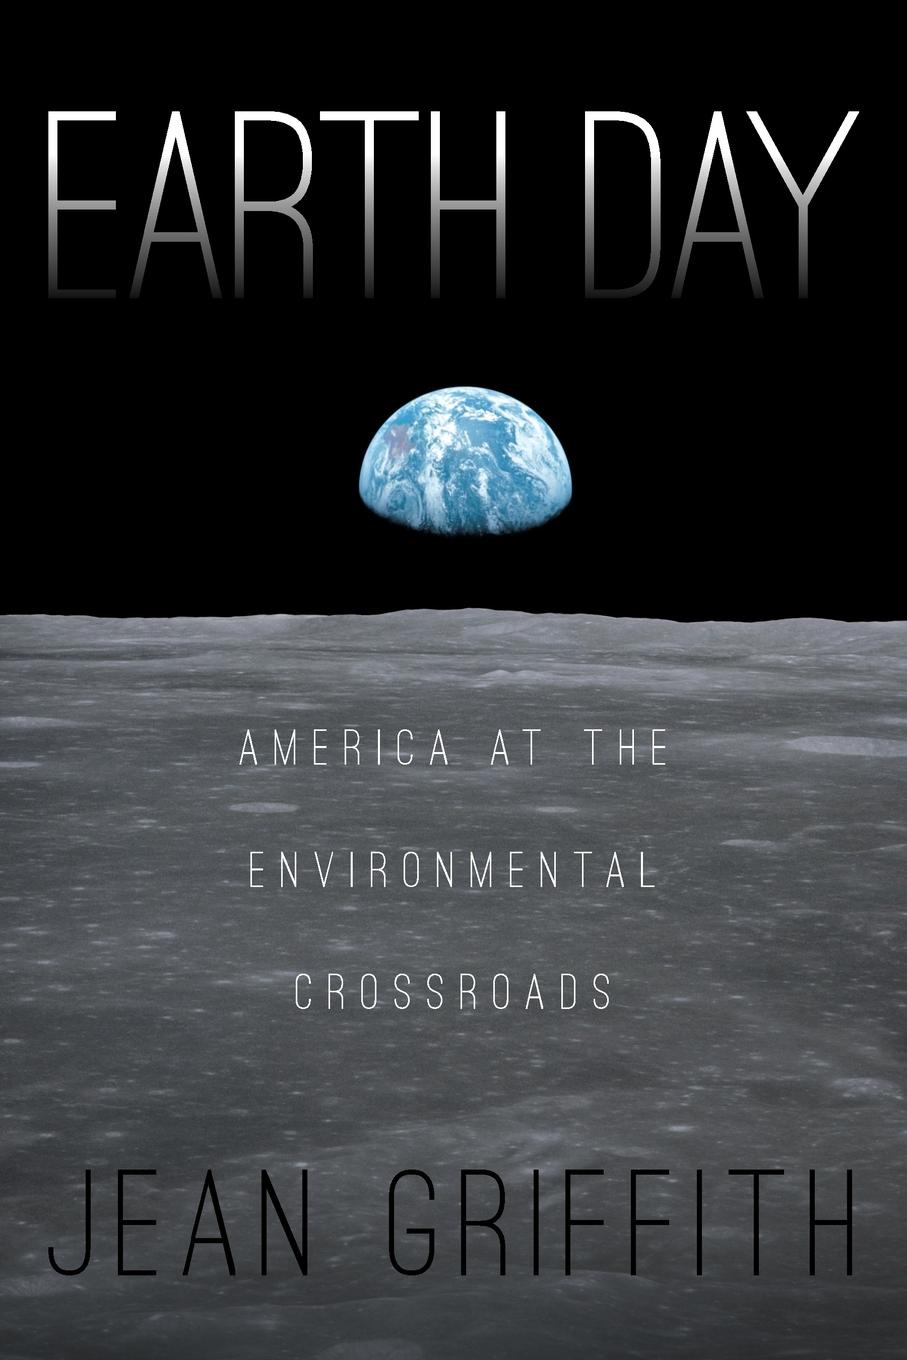 Jean Griffith. Earth Day. America at the Environmental Crossroads